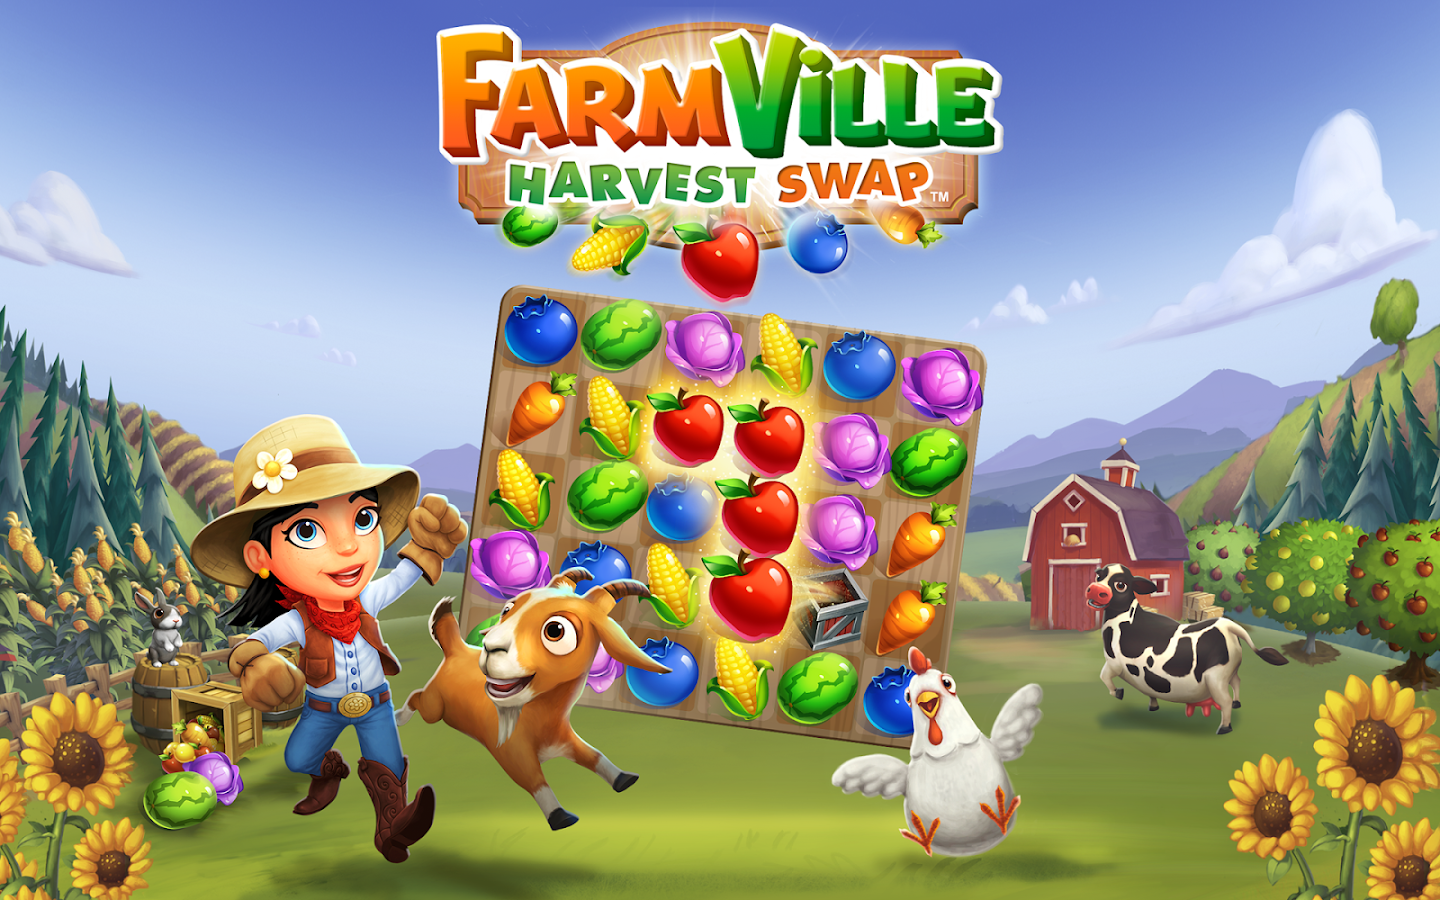 FarmVille: Harvest Swap Screenshot 16